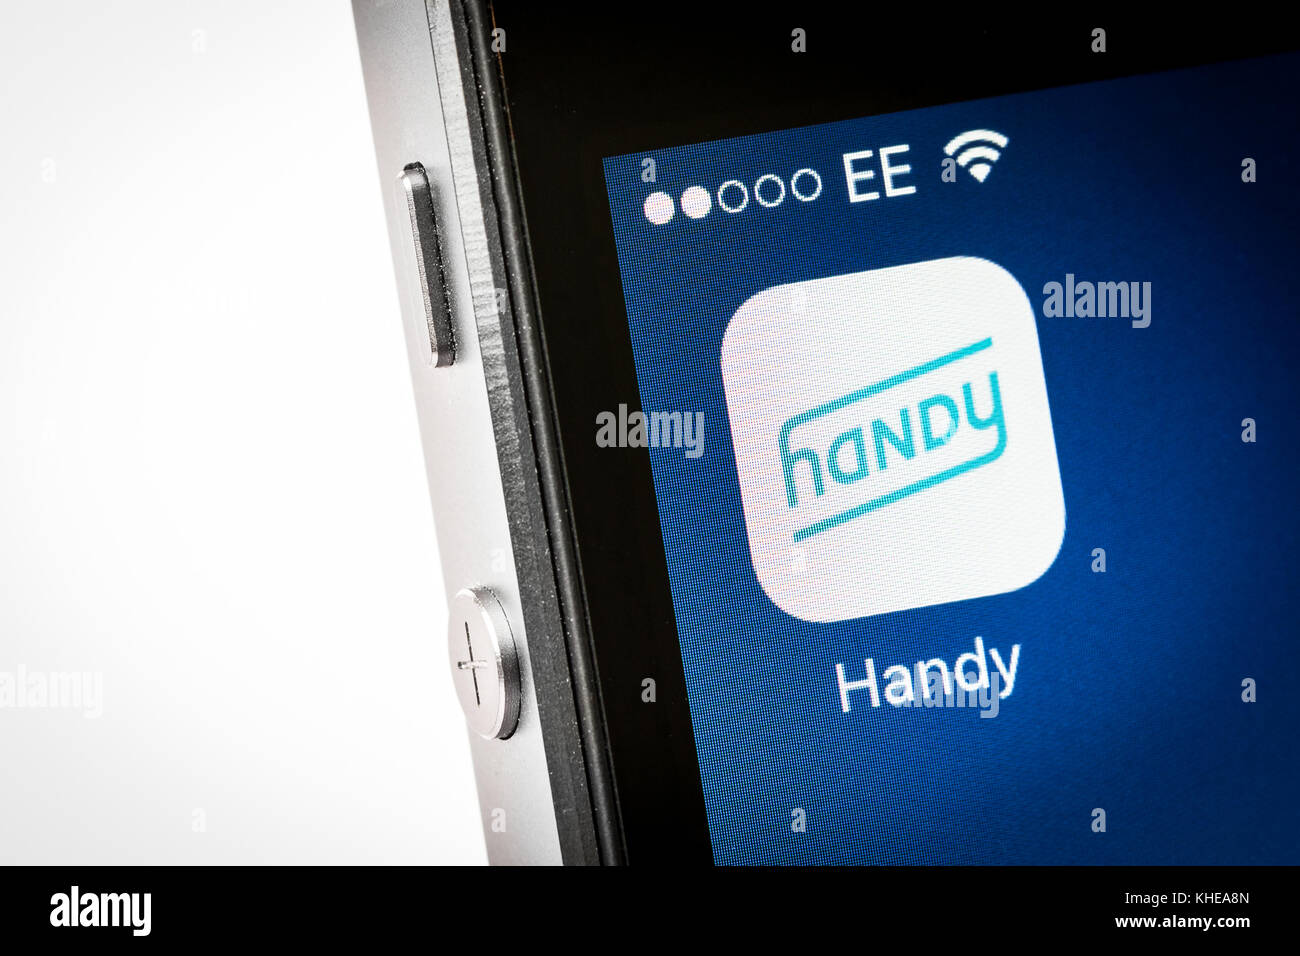 Handy mobile photo app on an iPhone - Stock Image